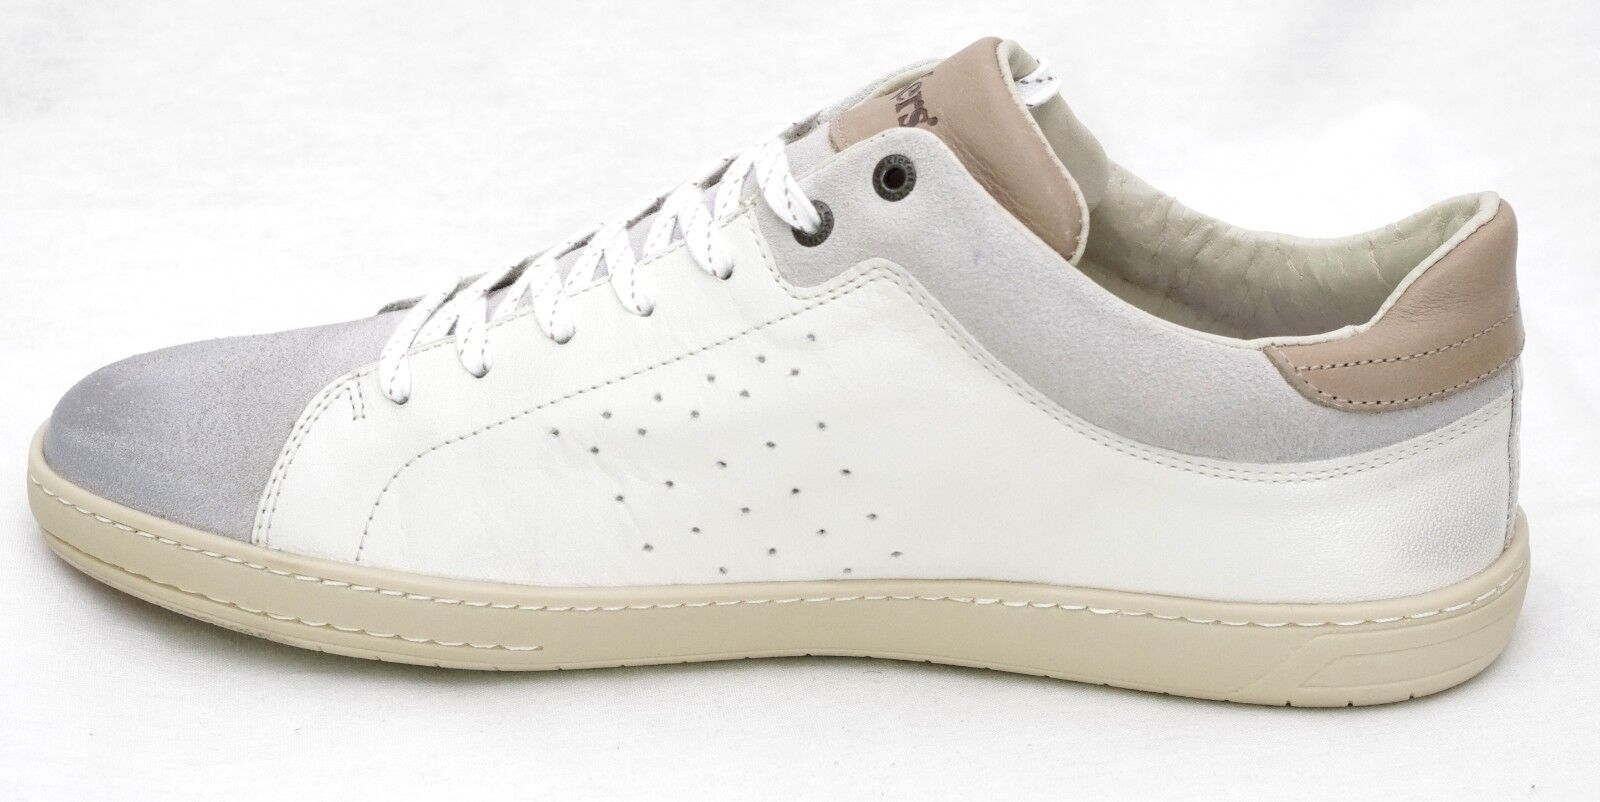 KICKERS SNIFF cuir baskets homme cuir SNIFF Blanc Gris 548690 886caa